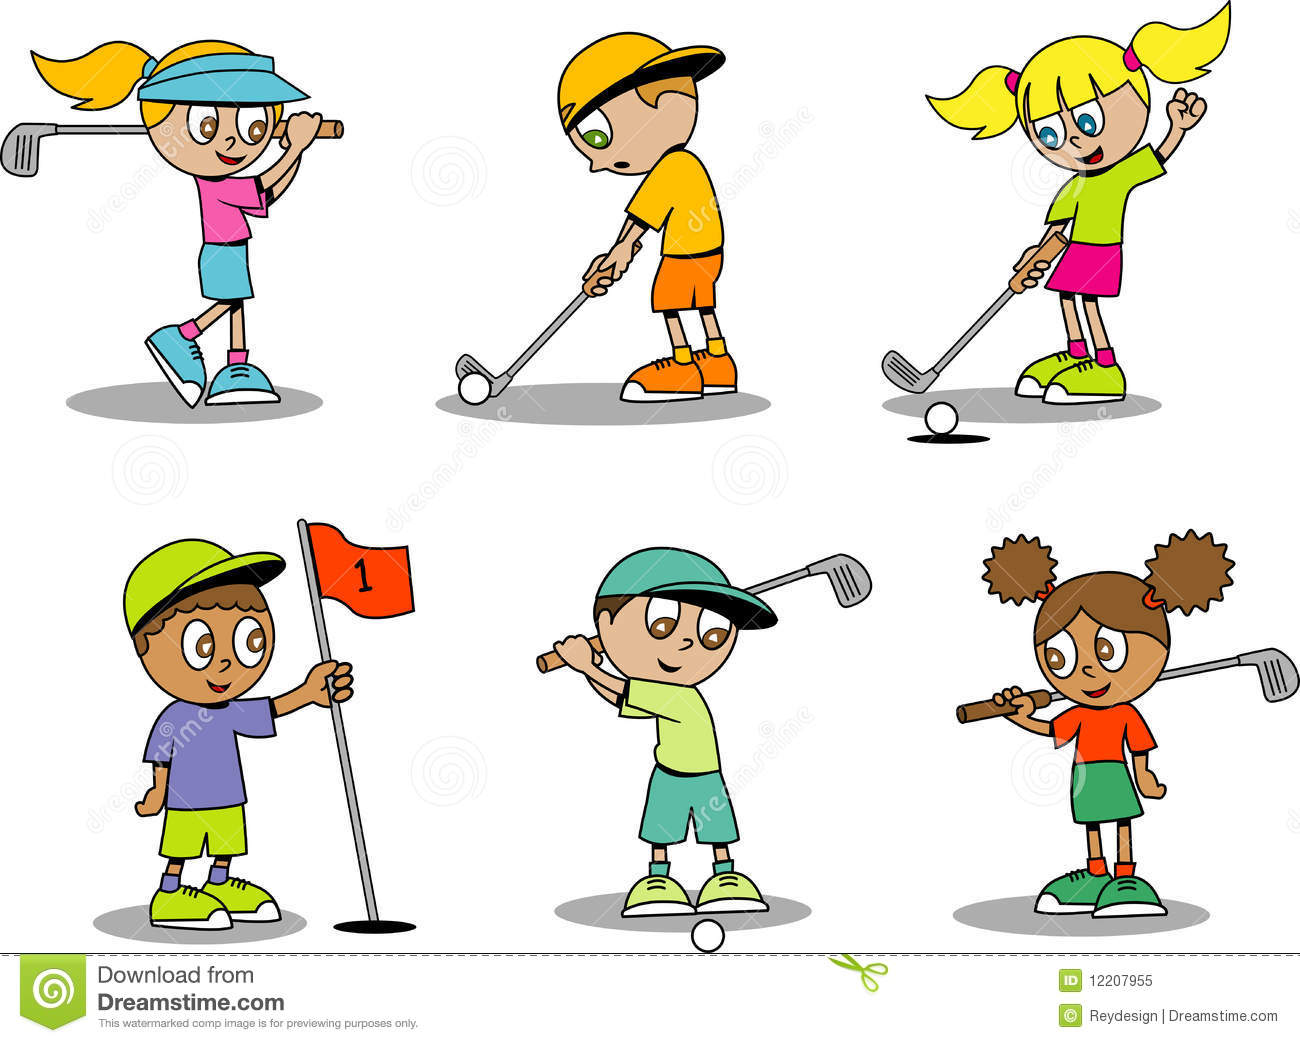 Cute Golf Kids Royalty Free Stock Photo - Image: 12207955